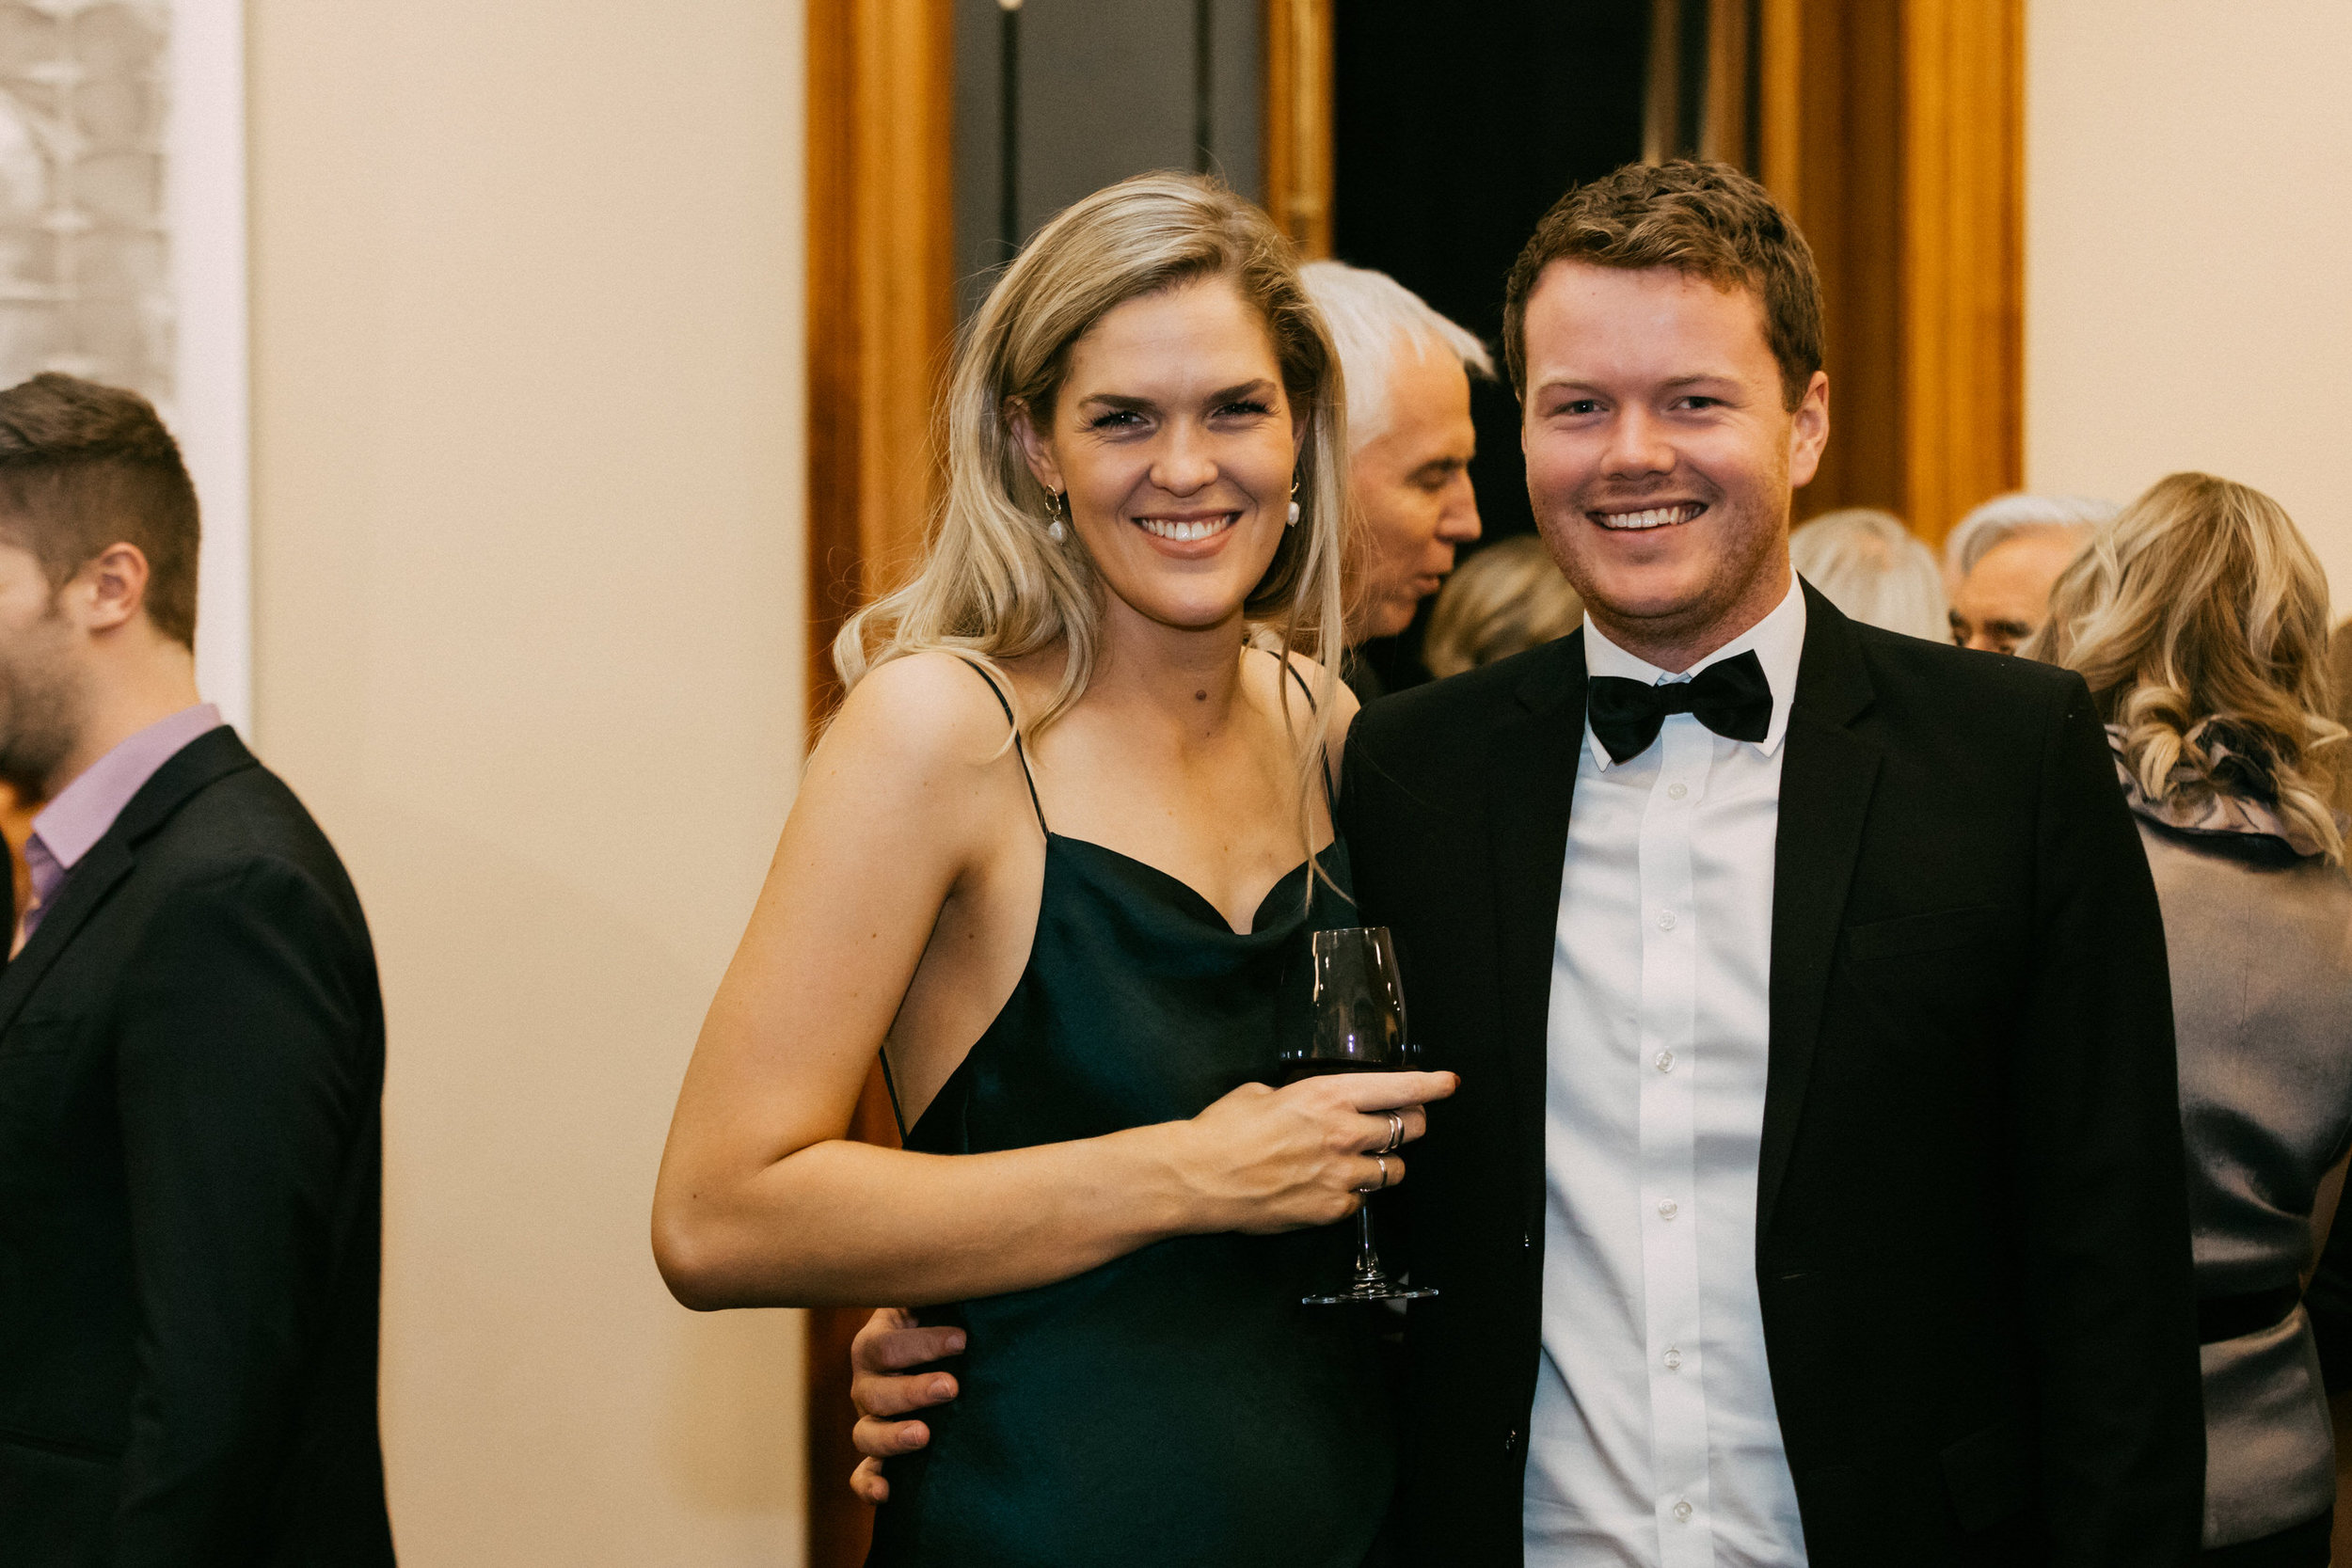 Adelaide Wedding 2019 143.jpg